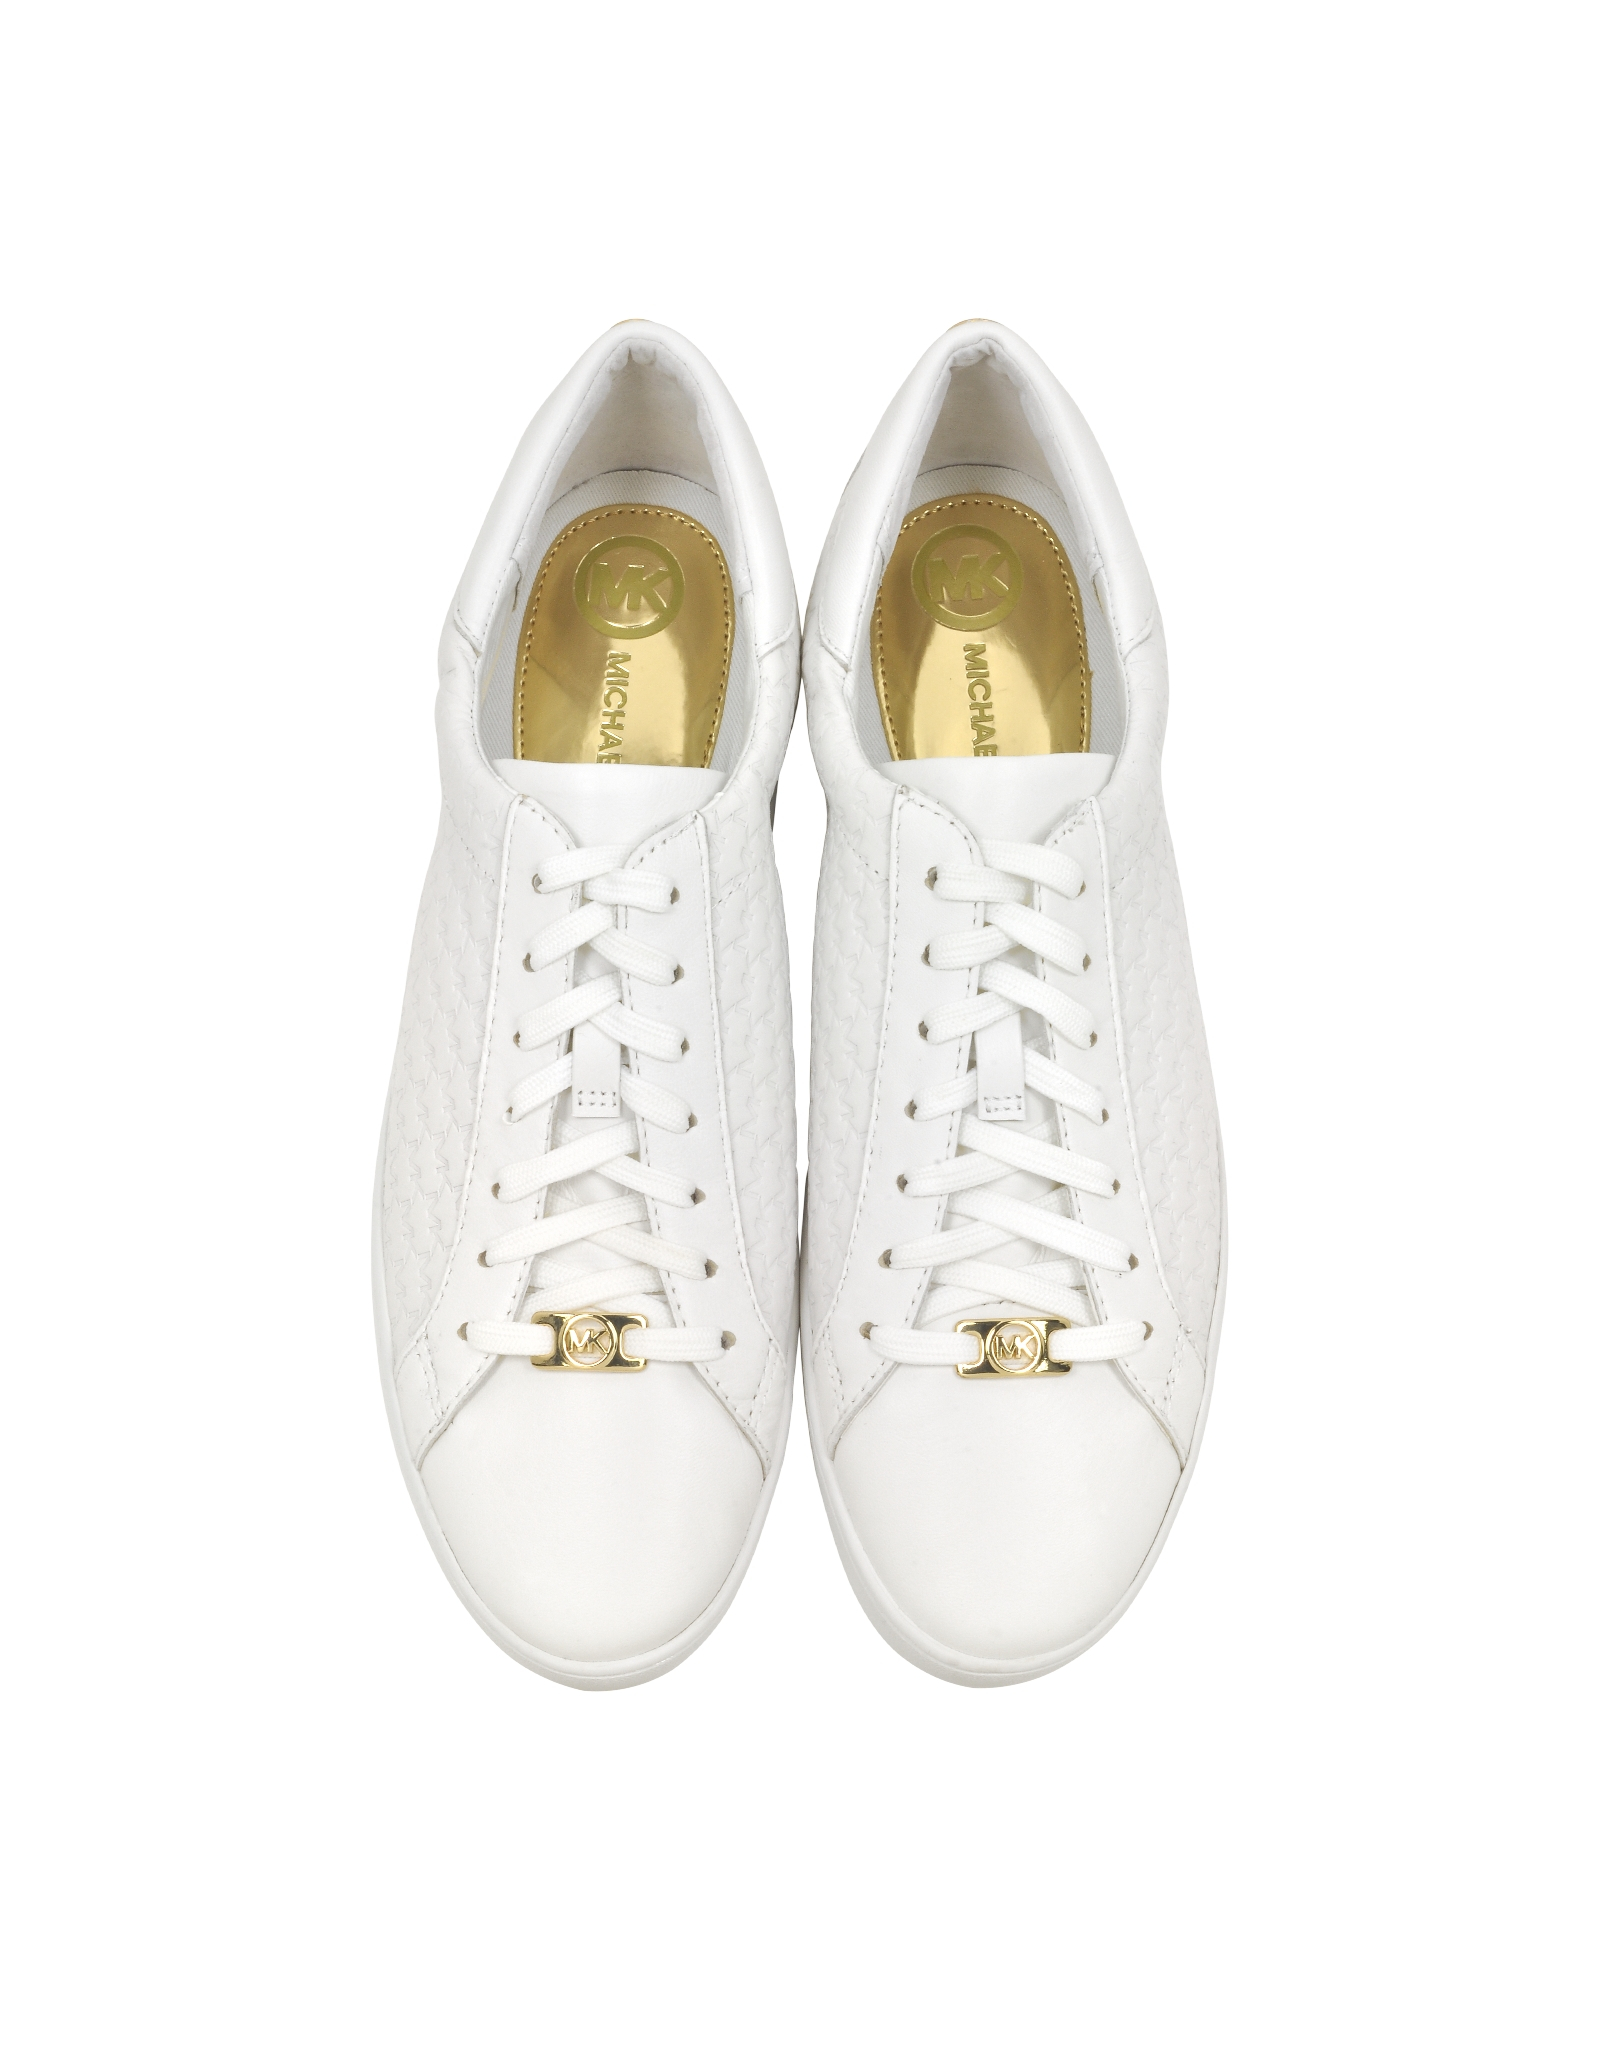 731c40a8c20 Michael Kors Colby Optic White Embossed Leather Sneaker in White - Lyst